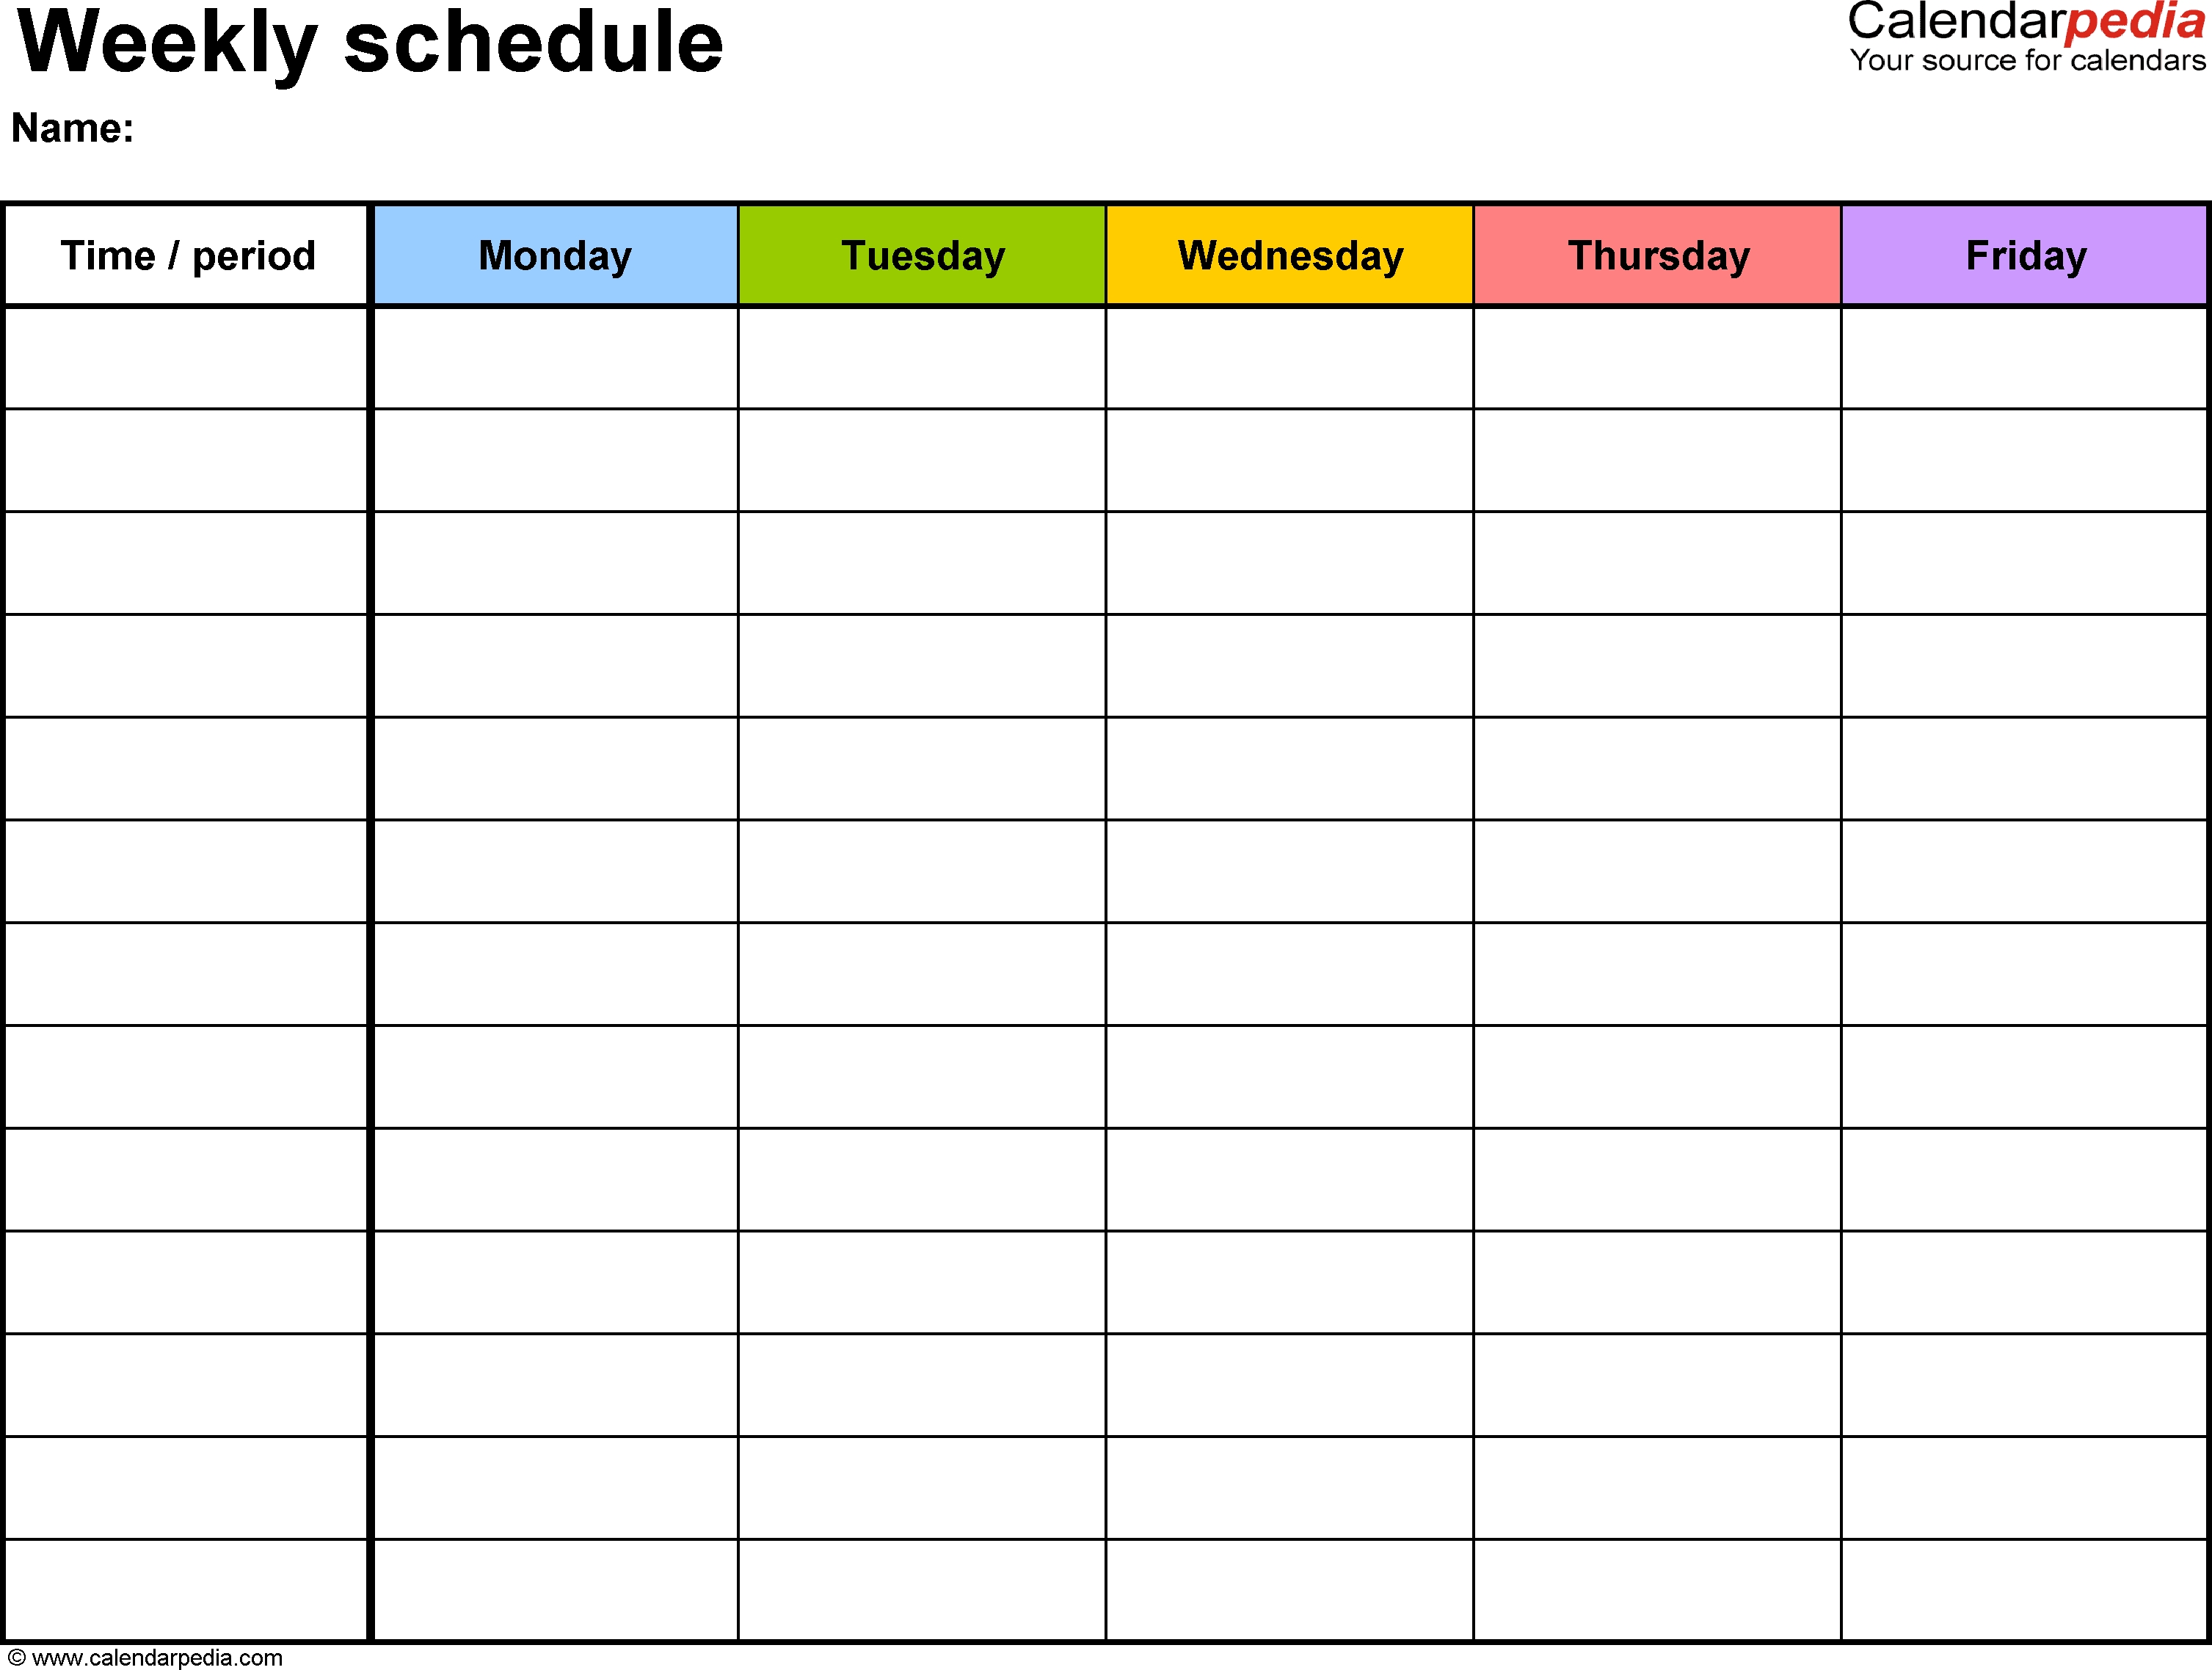 Free Weekly Schedule Templates For Word - 18 Templates with regard to 7 Days A Week Planner